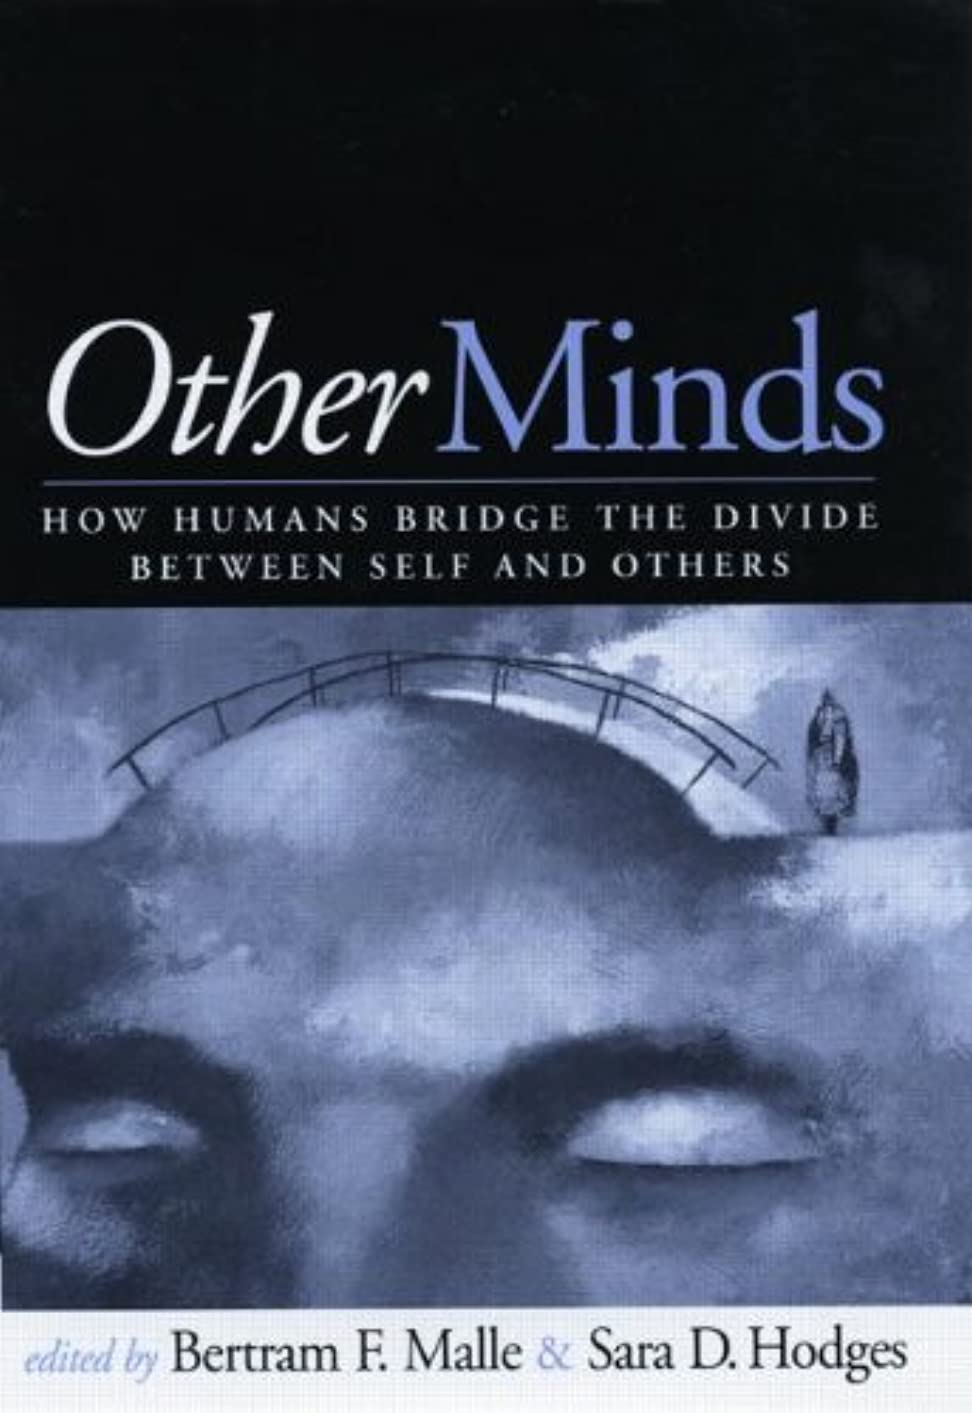 プレビュー限りなくカニOther Minds: How Humans Bridge the Divide between Self and Others (English Edition)